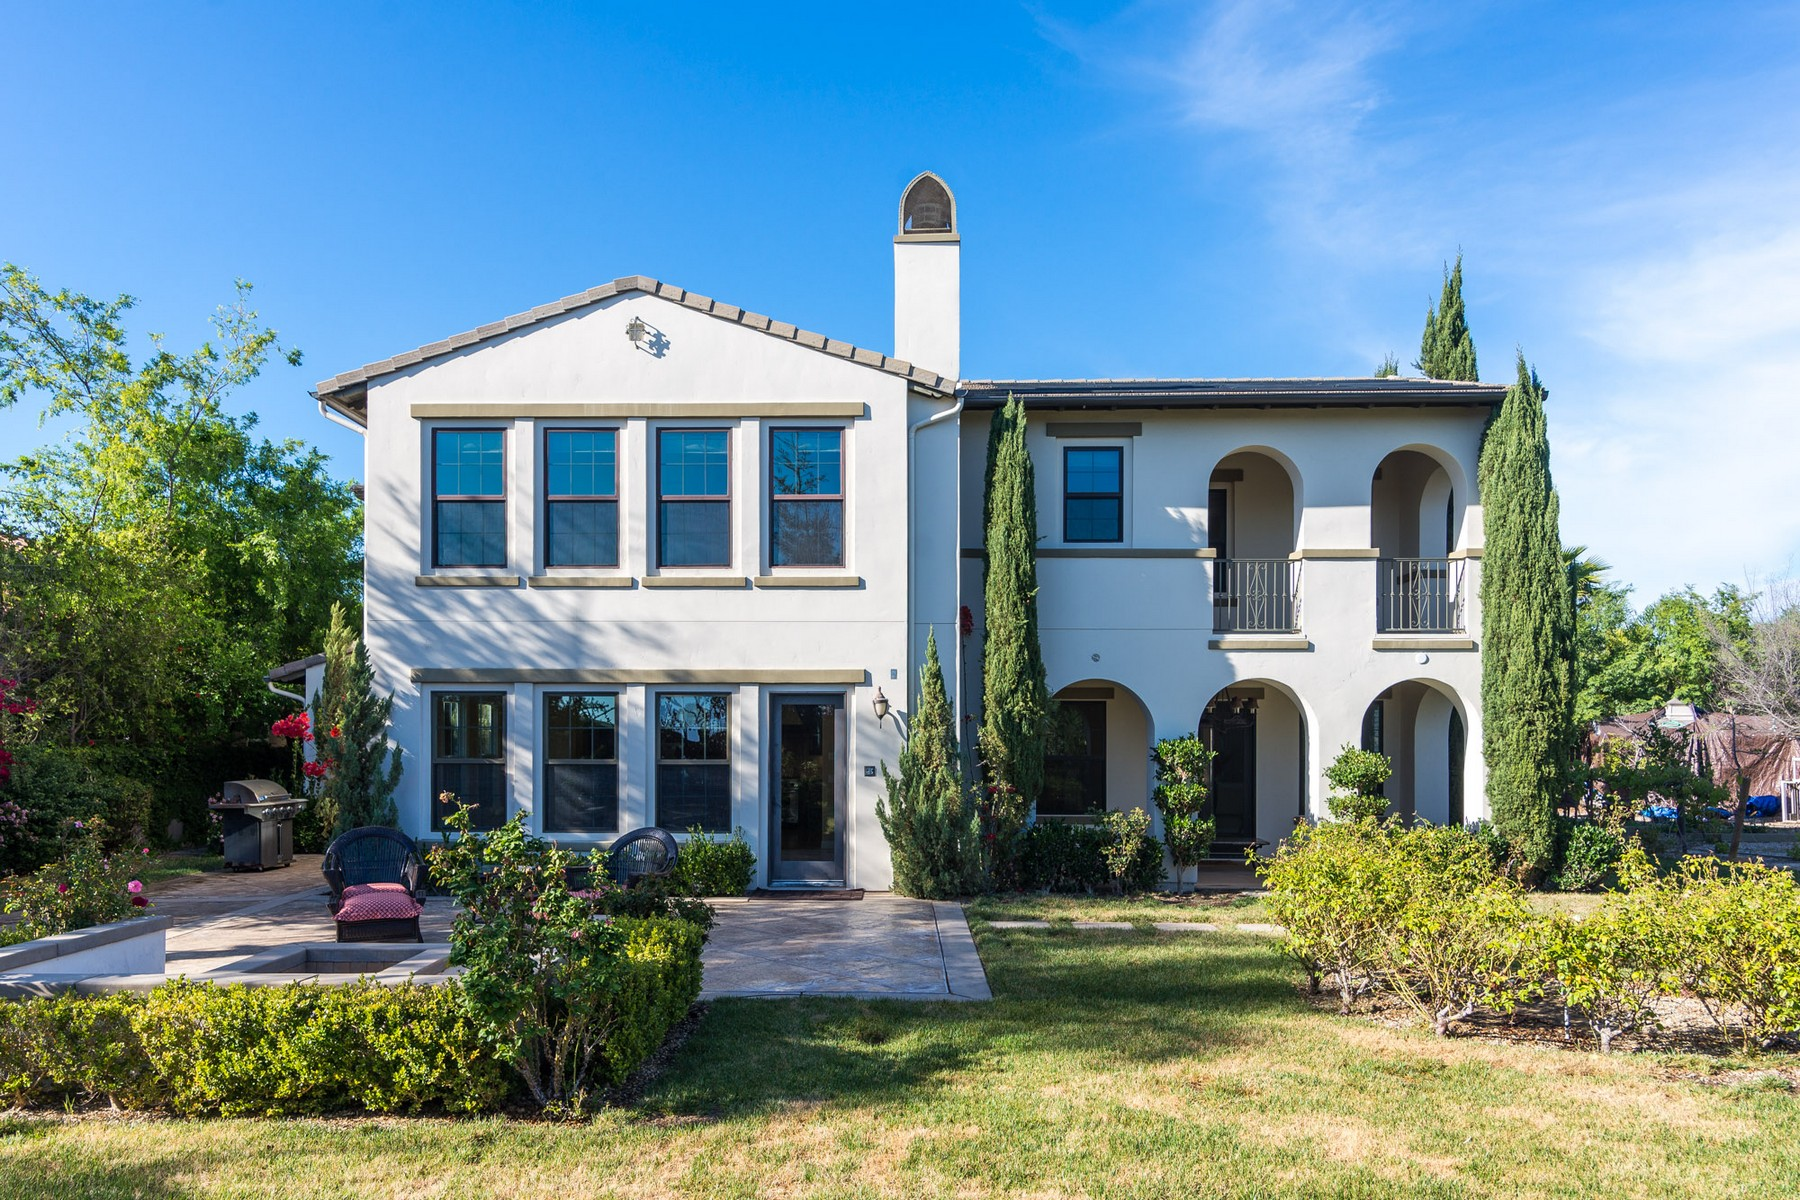 Single Family Home for Sale at 2 Story Home in Crosby 15587 Rising River Place South San Diego, California 92127 United States